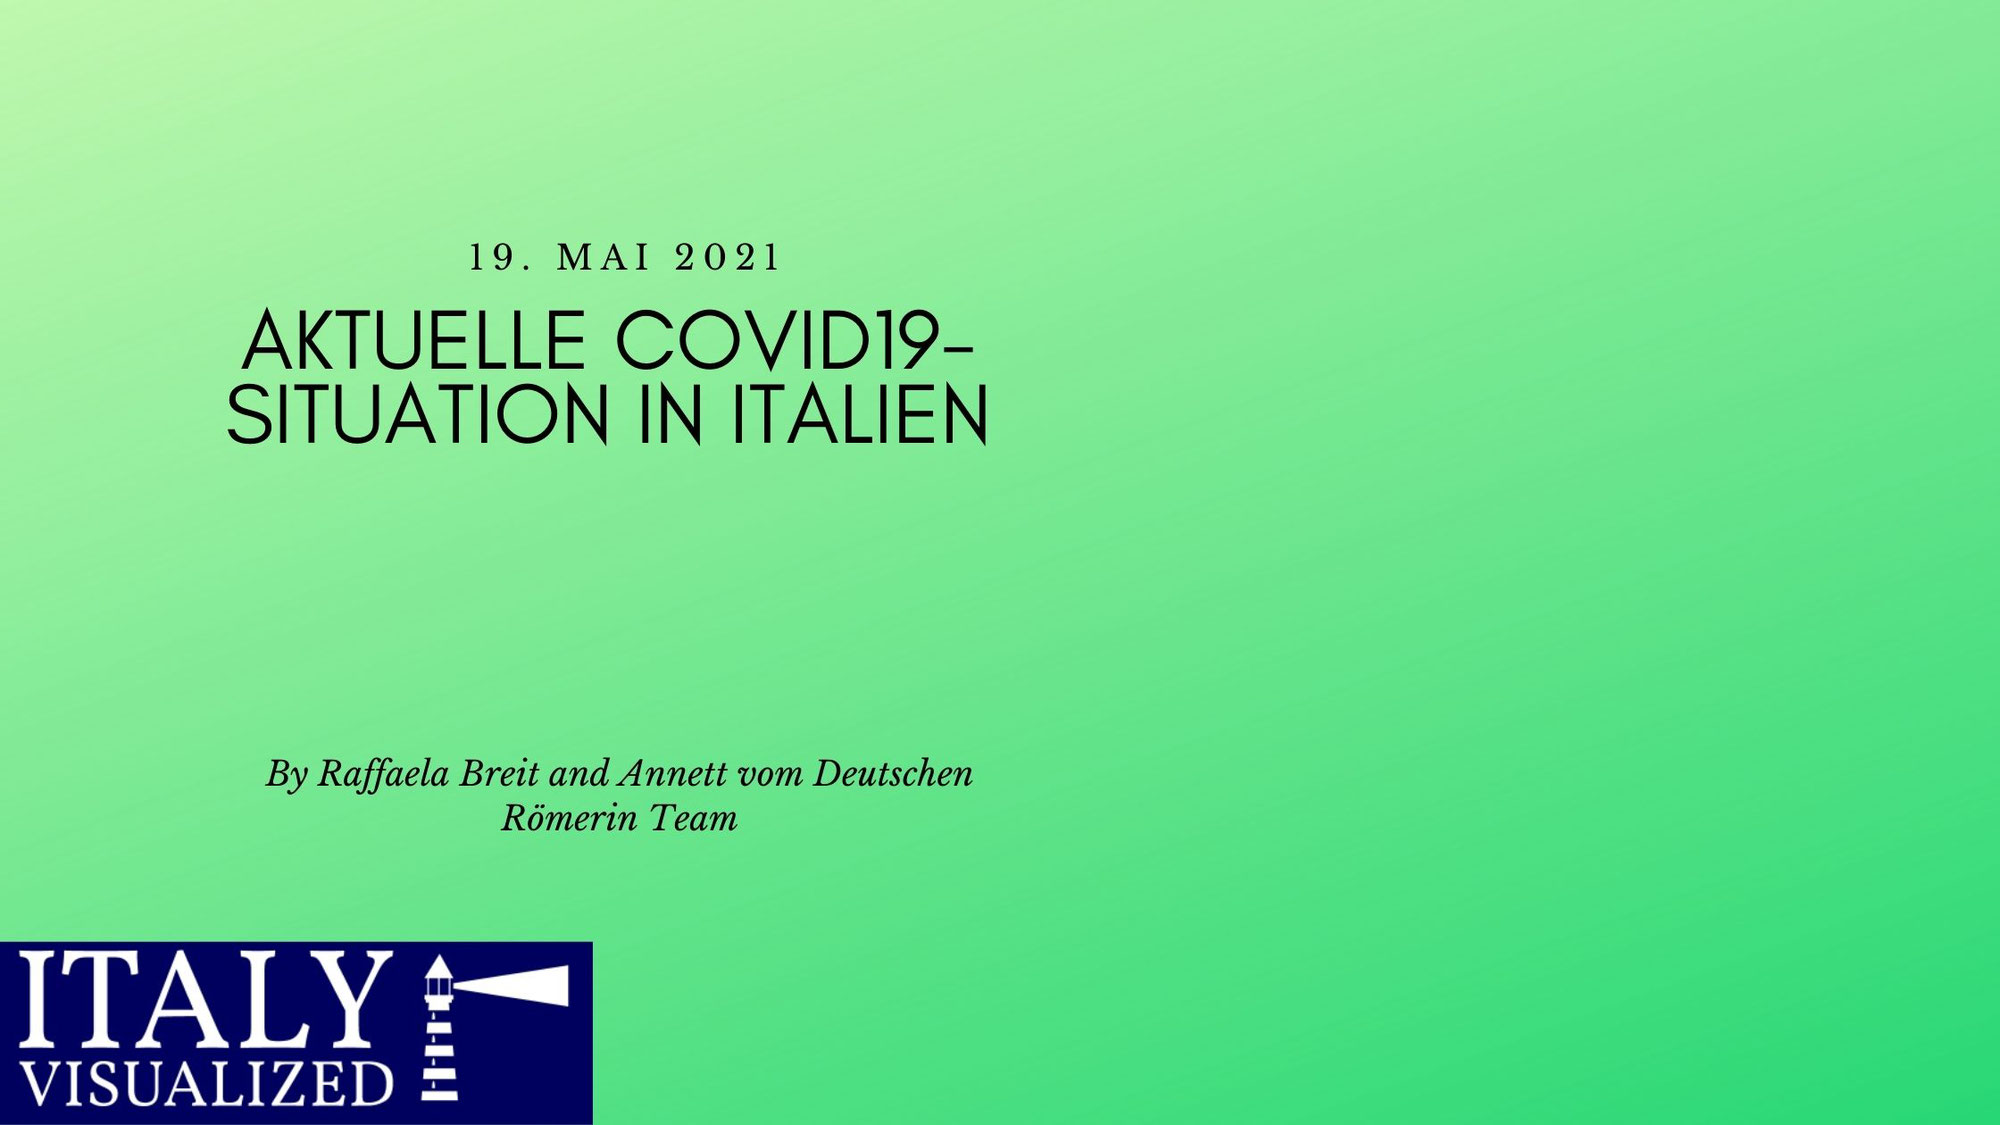 Aktuelle Covid19-Situation in Italien